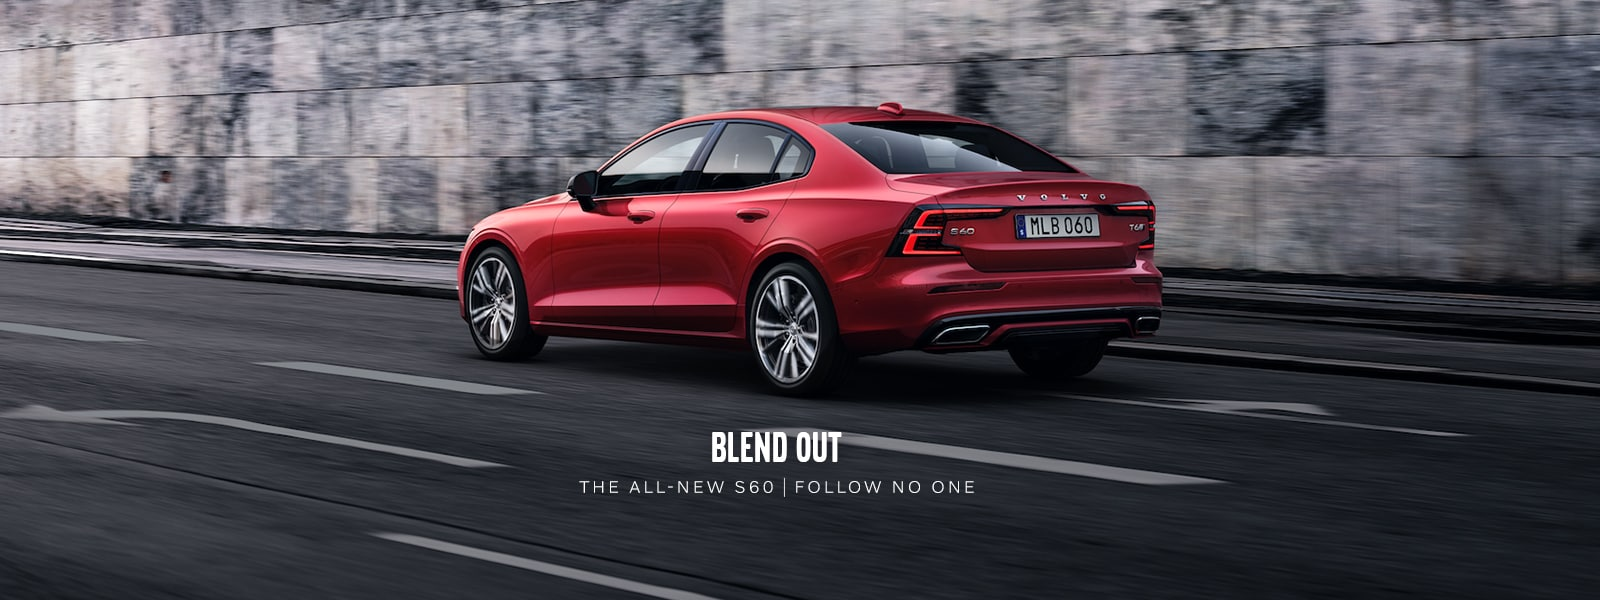 The all-new 2019 Volvo S60. Available at Culver City Volvo Cars